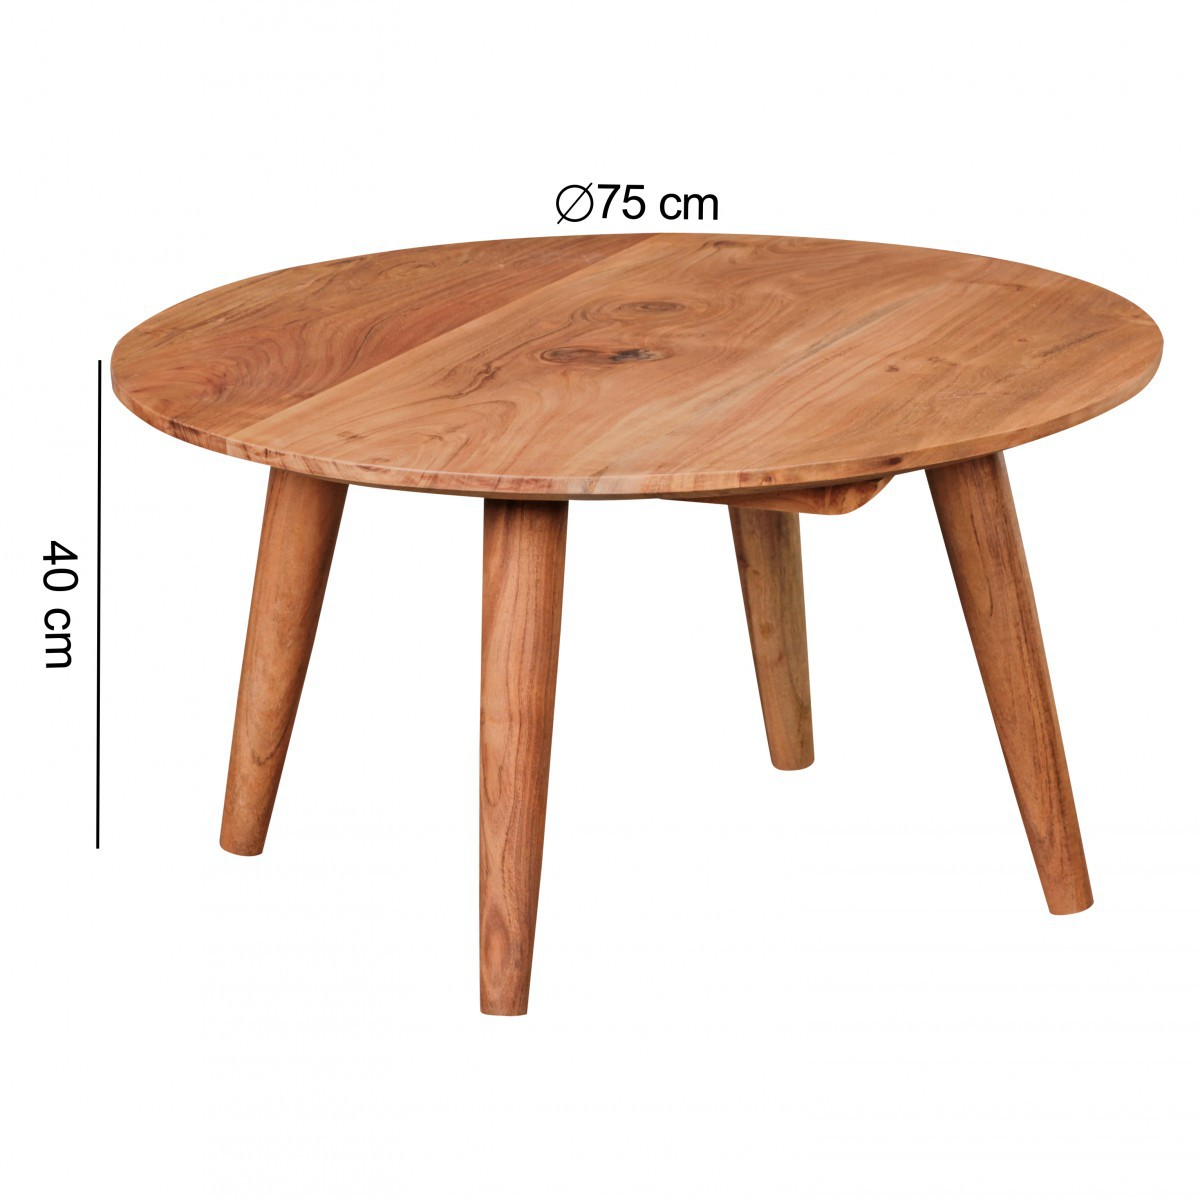 Finebuy table basse en bois massif acacia table basse - Table basse bois ronde ...